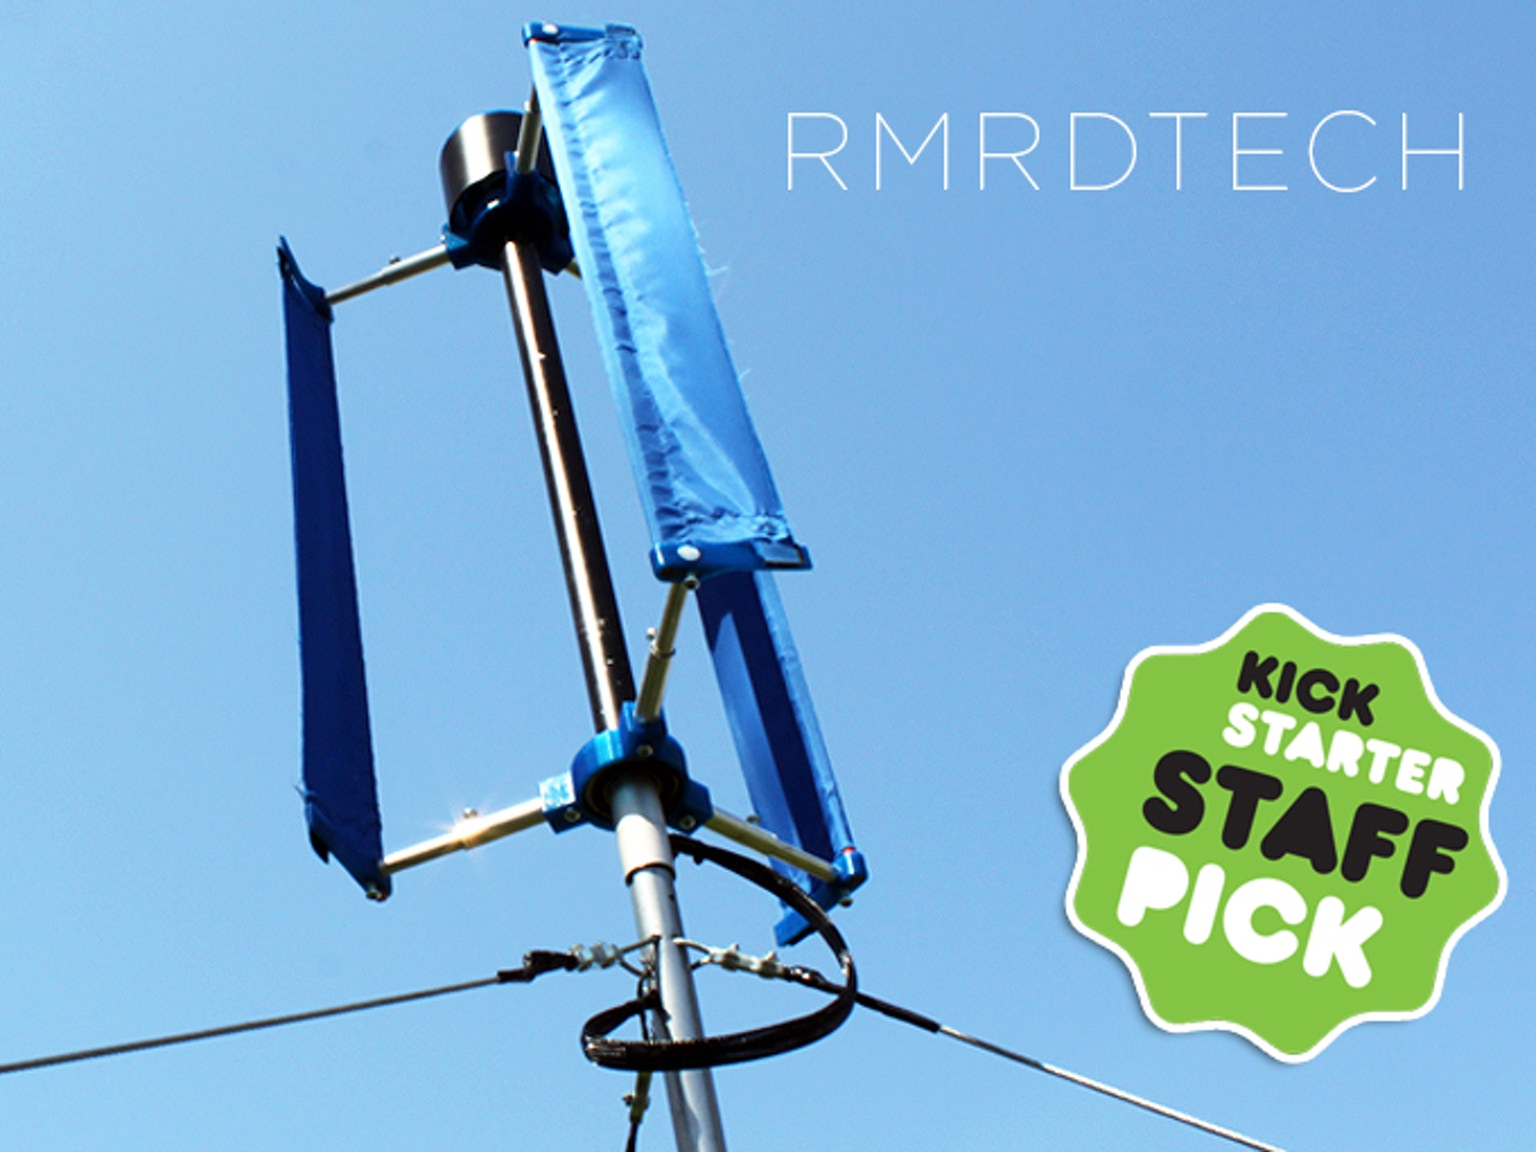 Wind Power Parts : A small wind turbine for big difference by rmrdtech